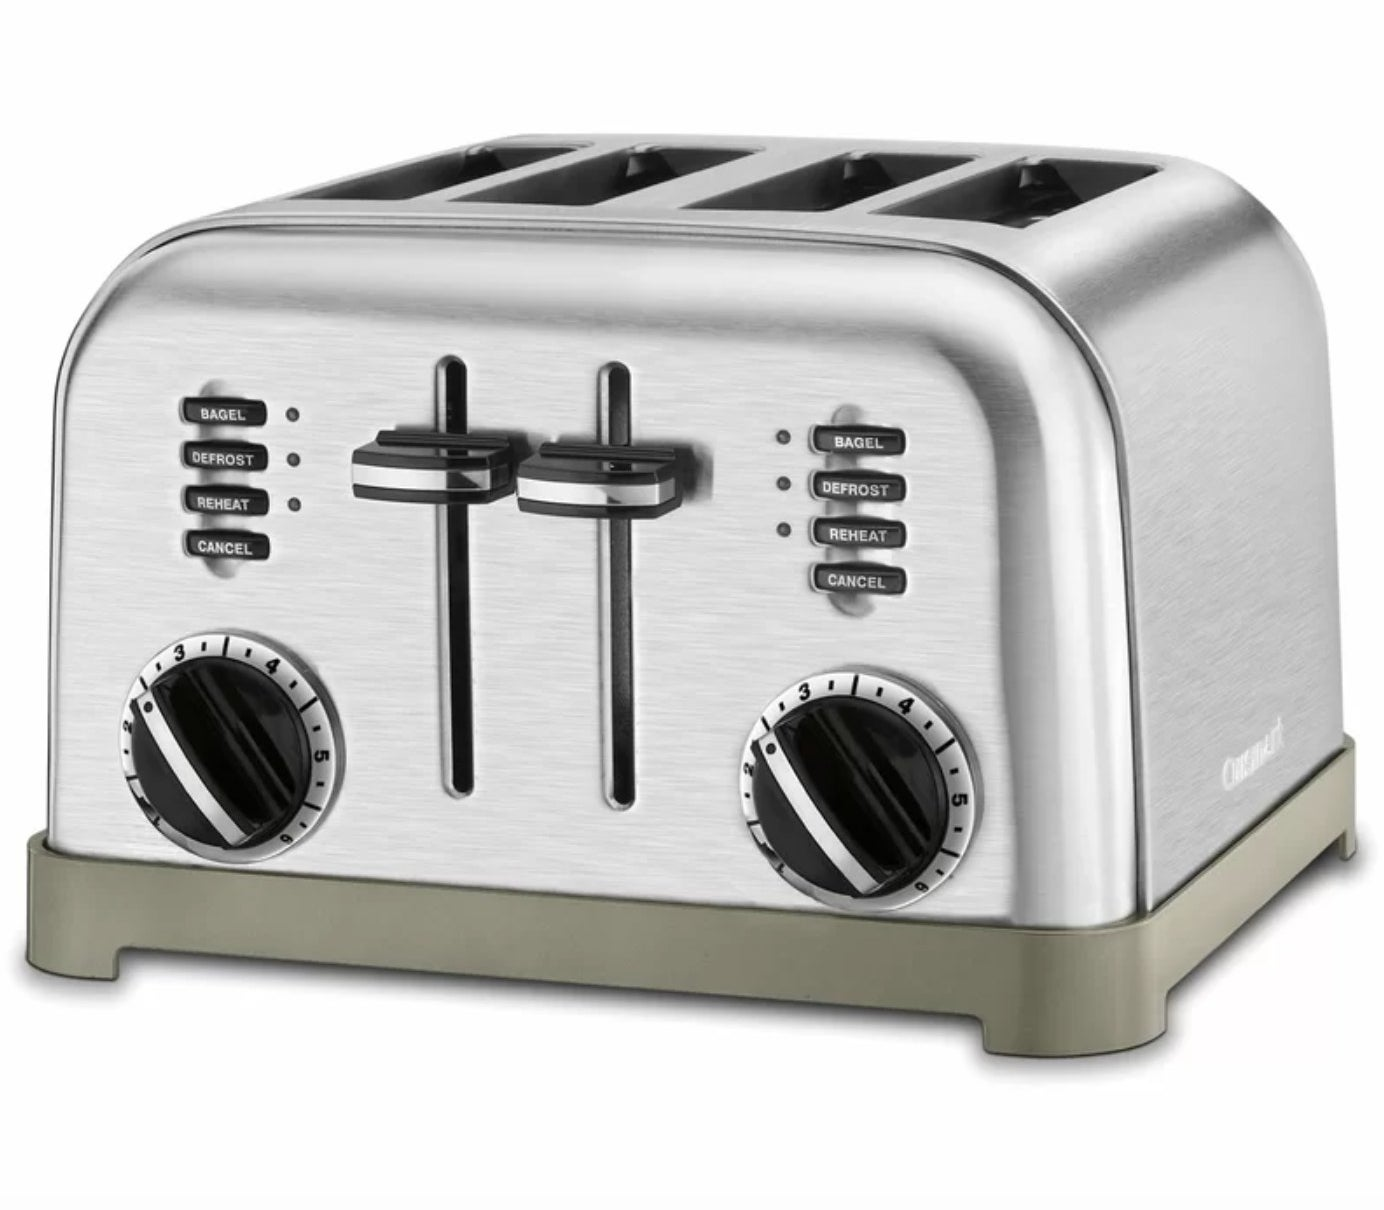 The Cuisinart four-slice toaster in black